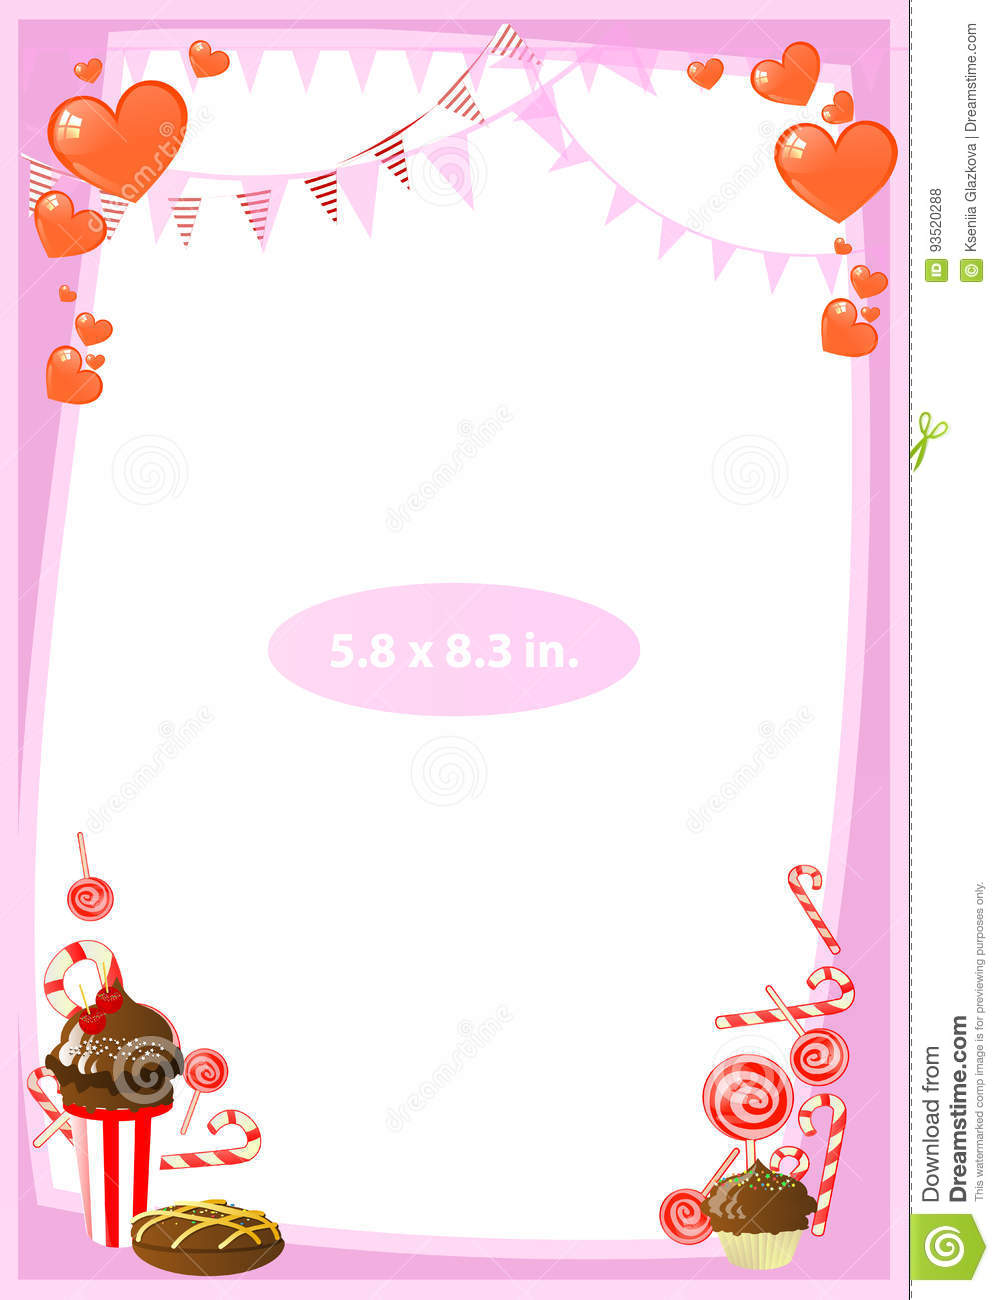 f78091687d3a Photo Frame. Standard Photo Size In Inches. Stock Illustration ...